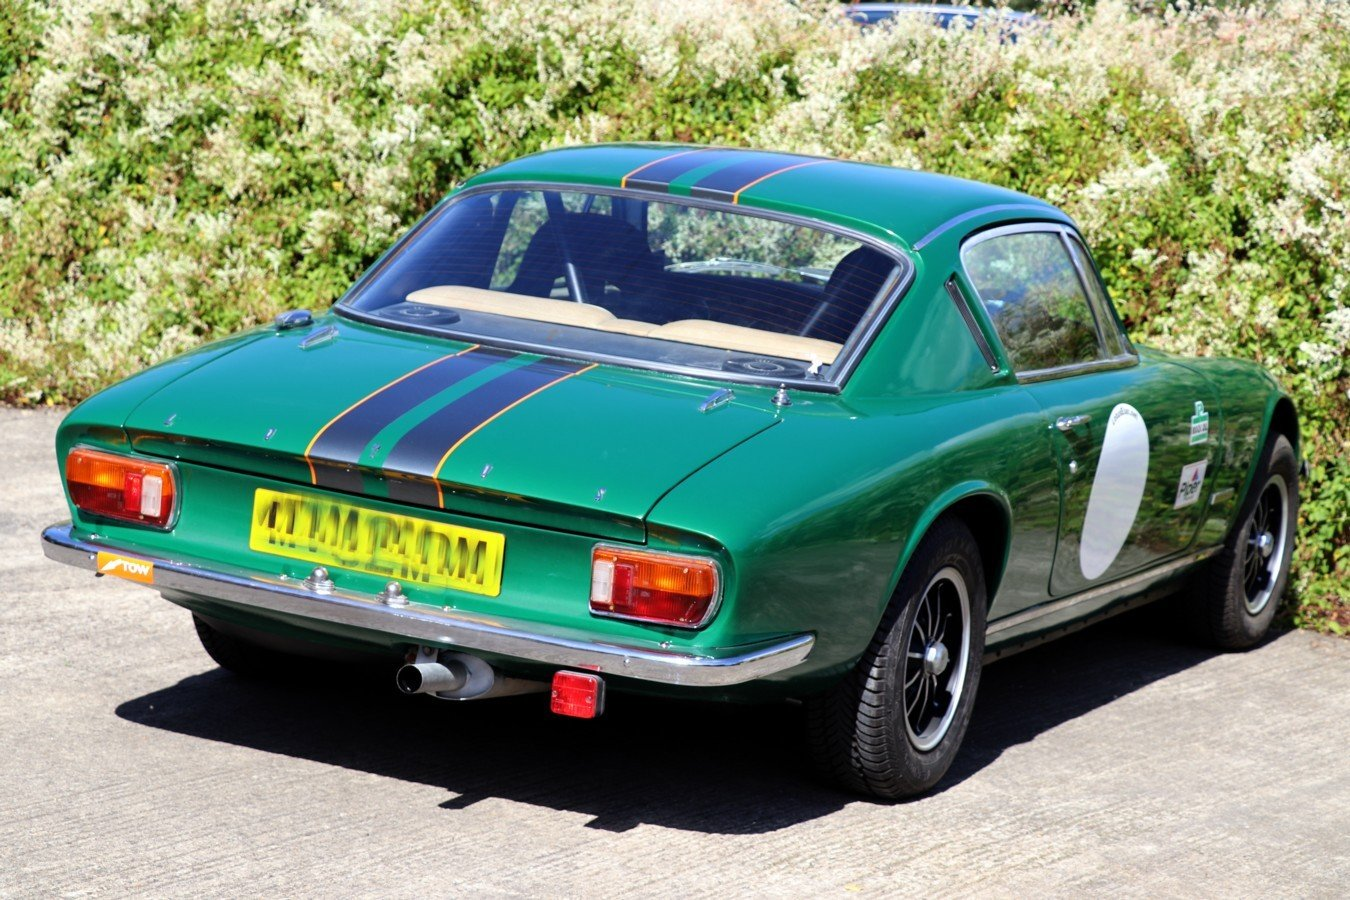 1973 Lotus Elan +2 S 130 Sprint Hillclimb car For Sale (picture 3 of 6)